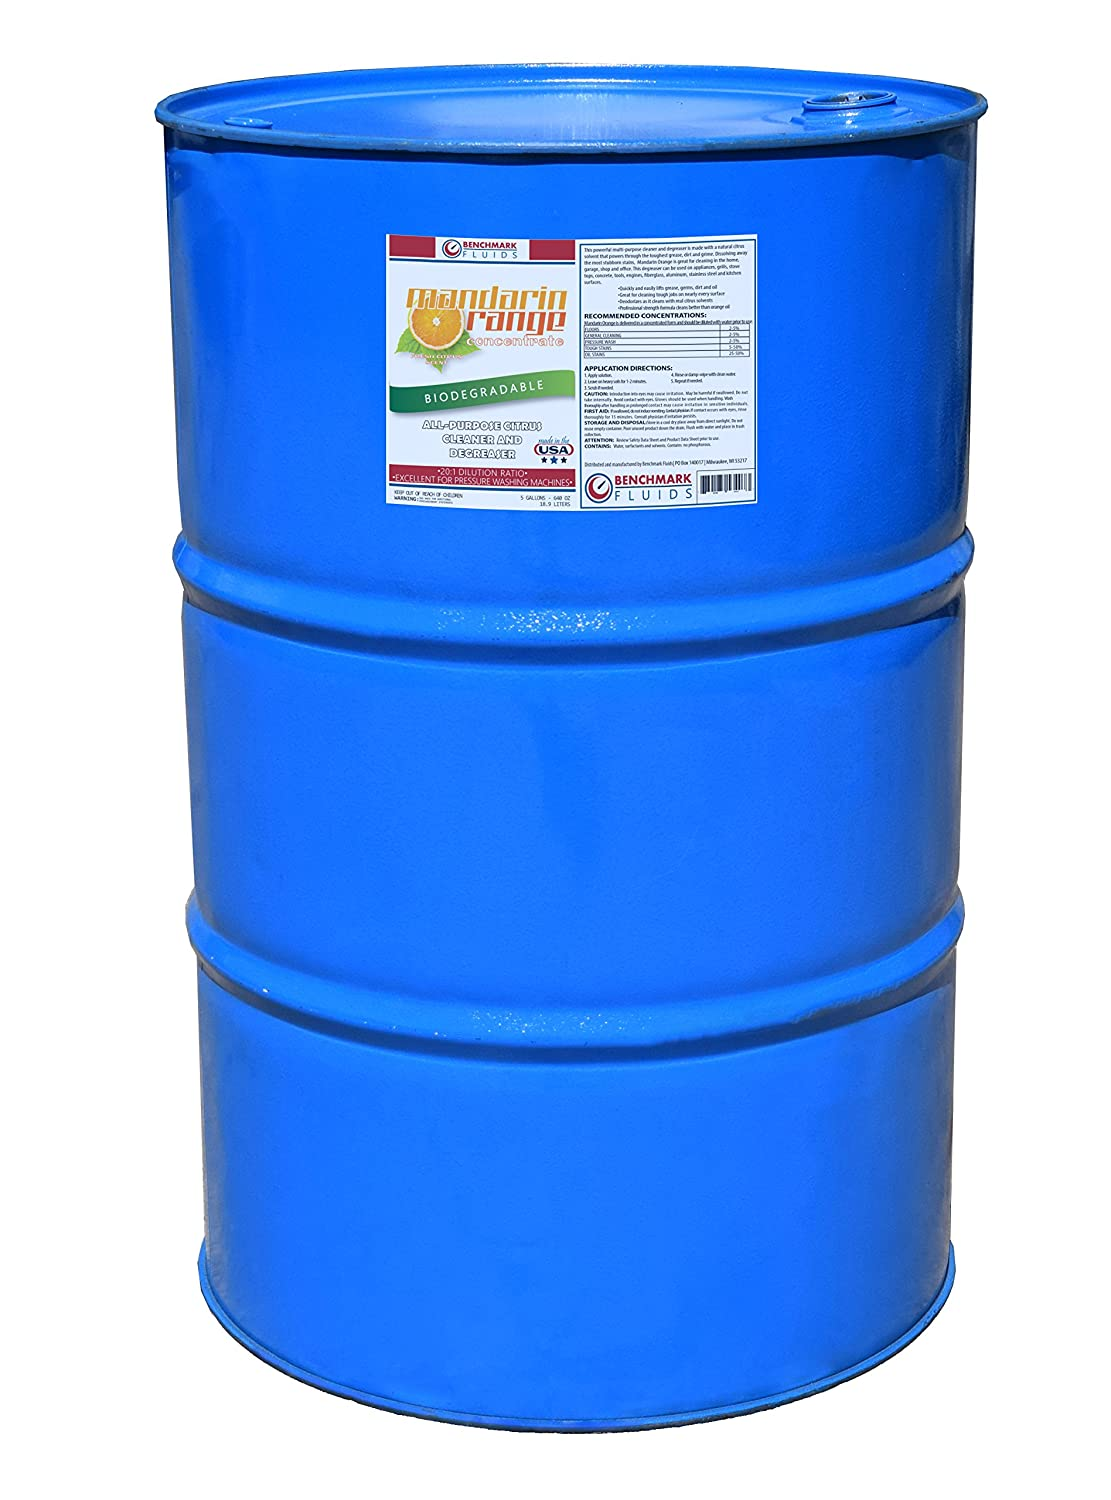 Benchmark Fluids 55 Gallon Drum Mandarin Orange - All Purpose Citrus Cleaner and Degreaser Concentrate, 55 gal